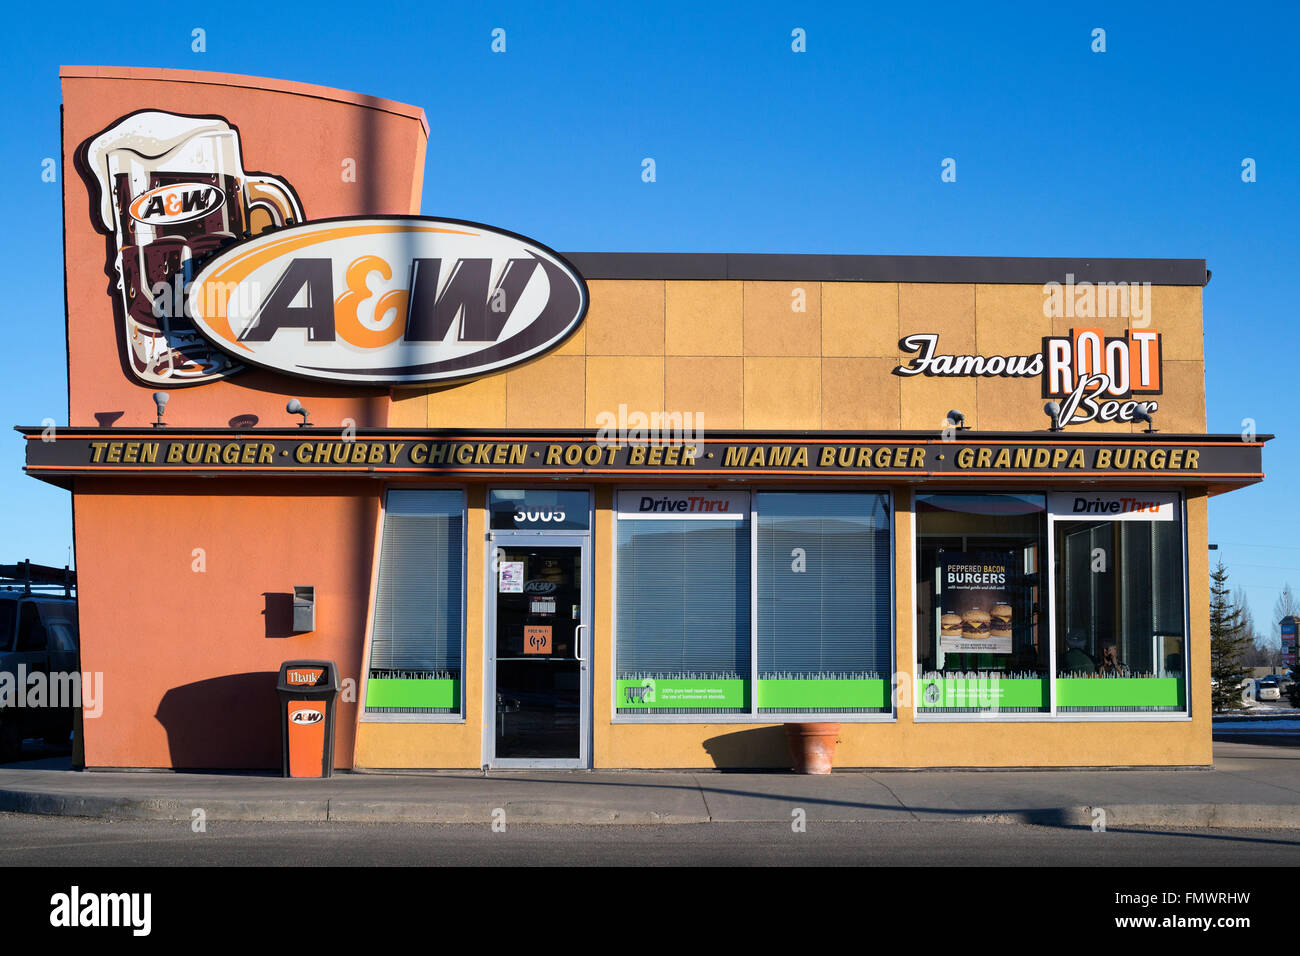 A&W fast food outlet in suburban mall Stock Photo